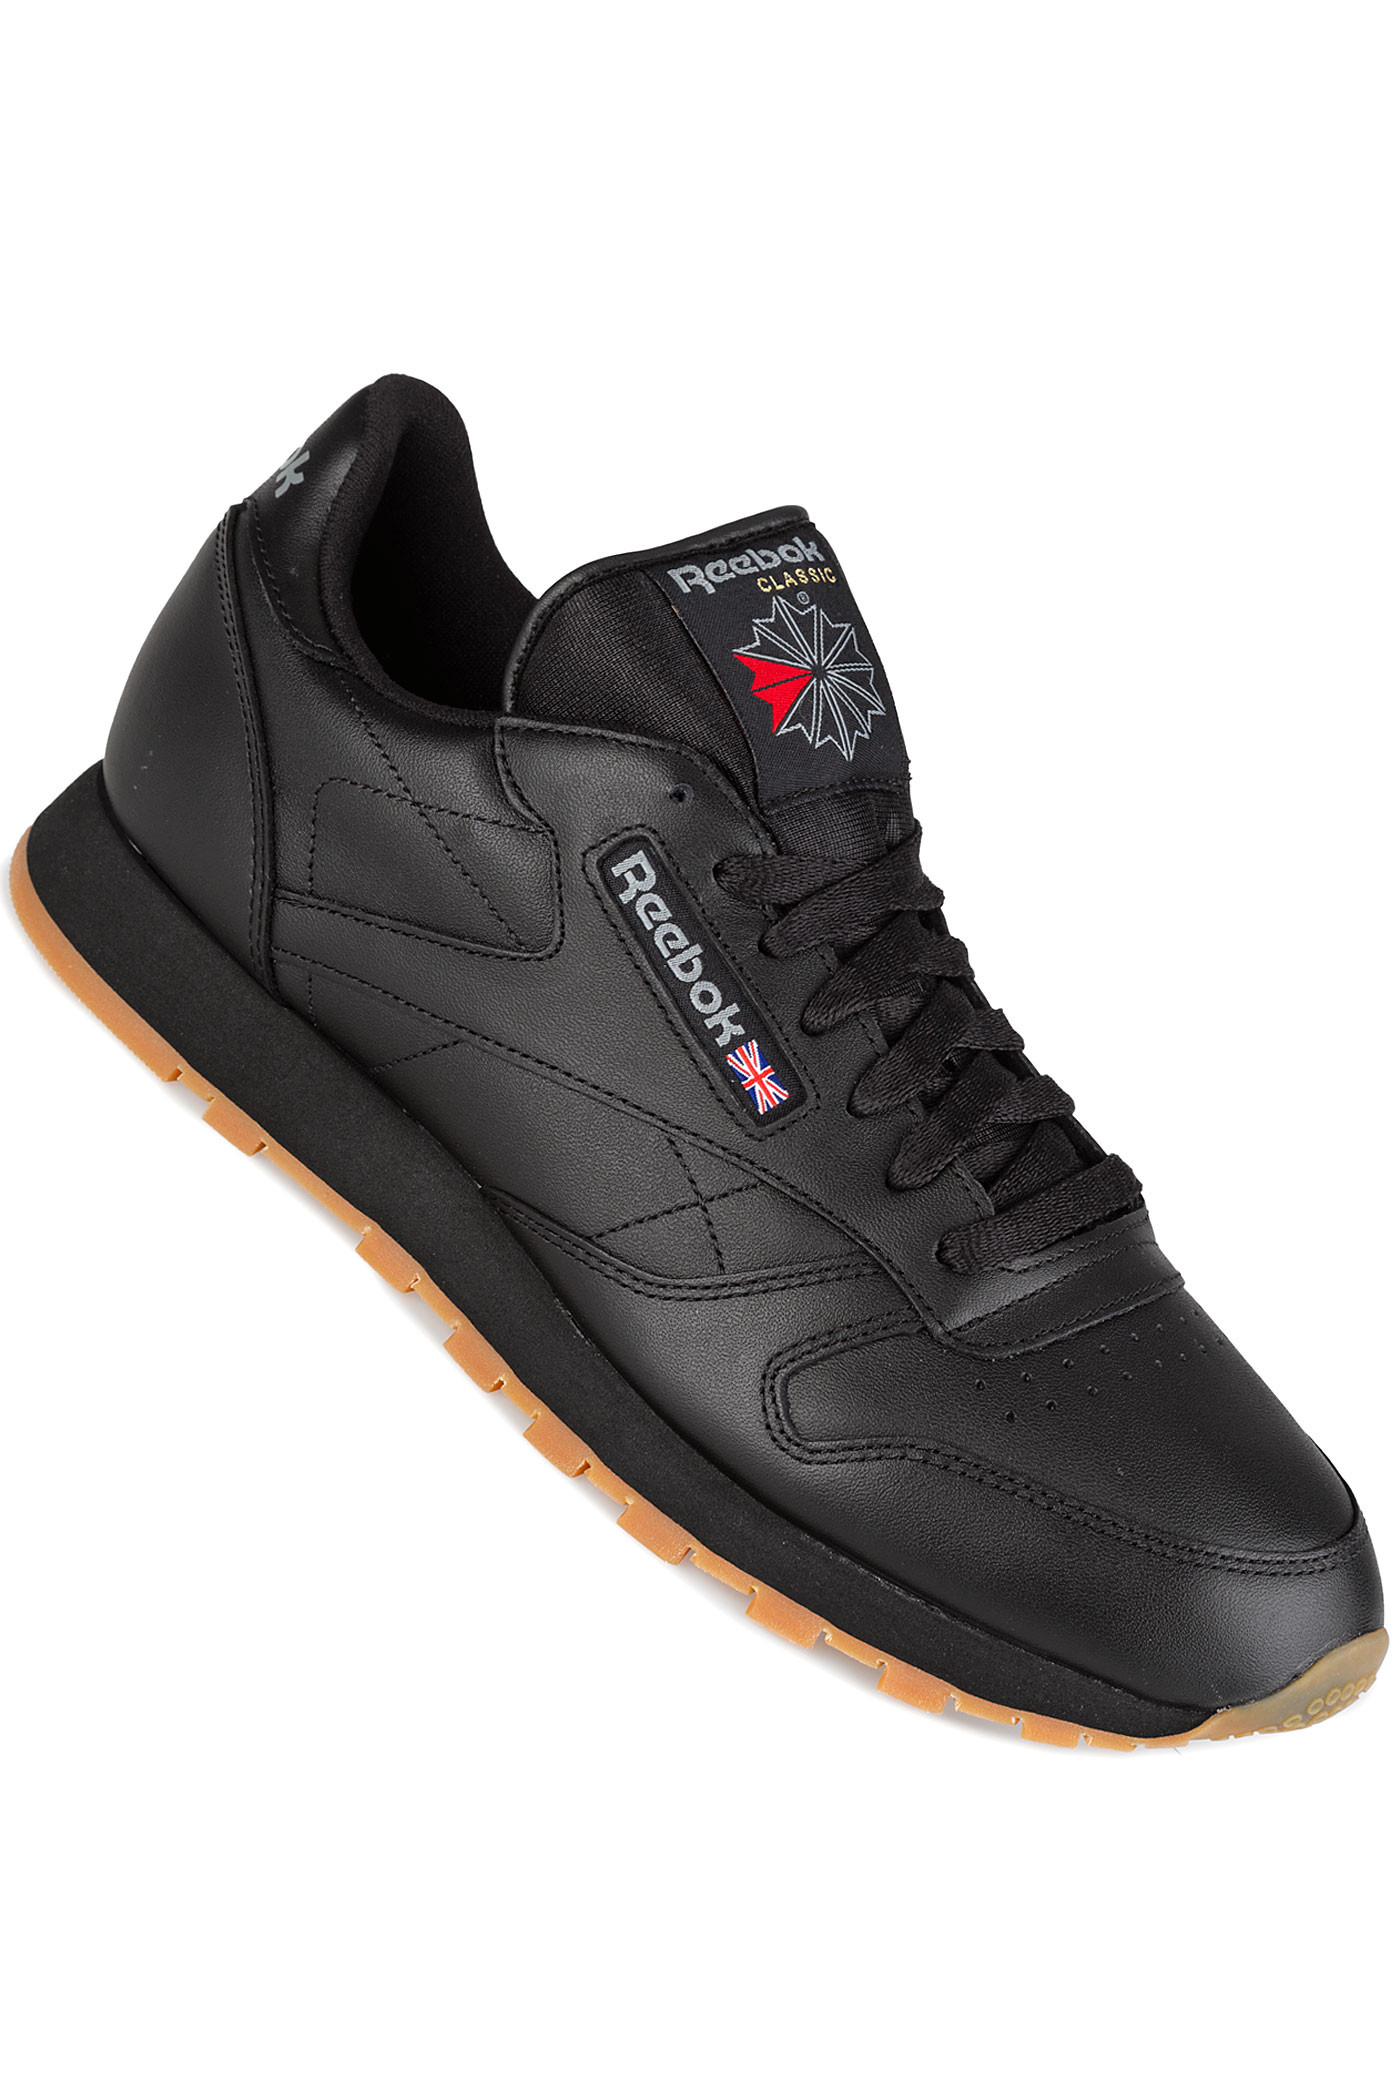 reebok classic leather chaussure black gum achetez sur skatedeluxe. Black Bedroom Furniture Sets. Home Design Ideas